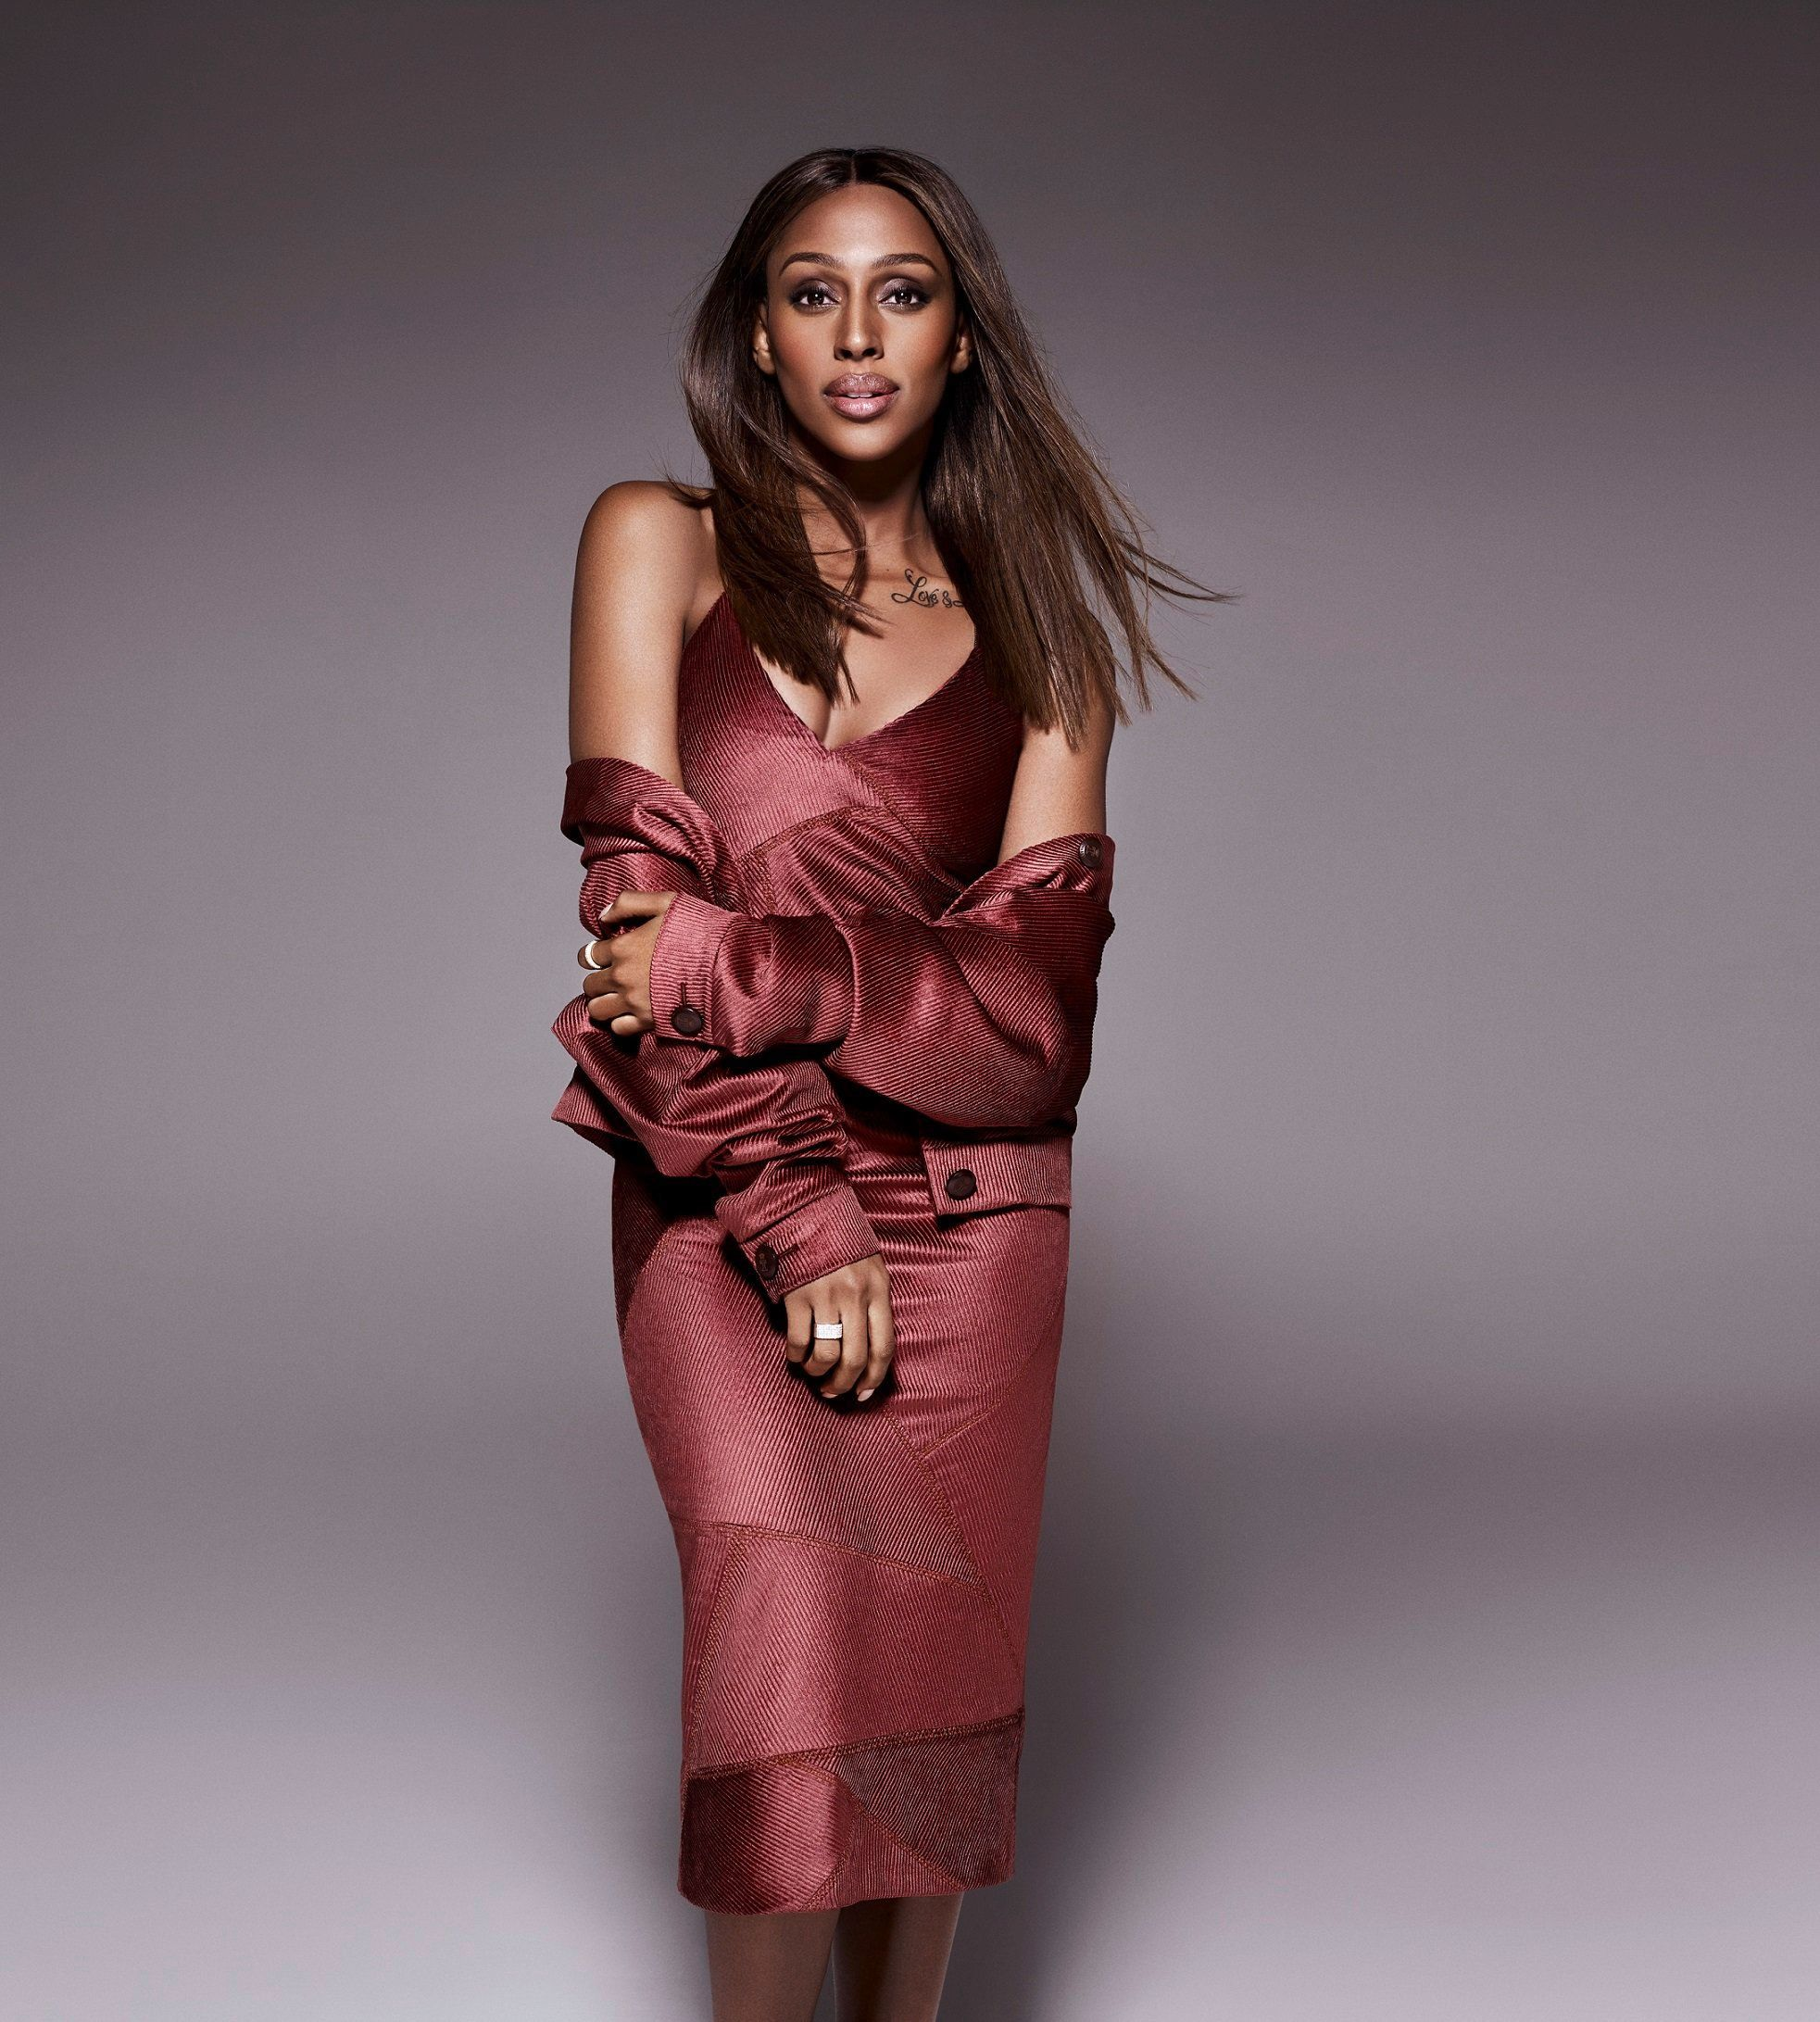 Alexandra Burke Talks Bouncing Back From 'Toughest Year Of Her Life' With New Album 'The Truth